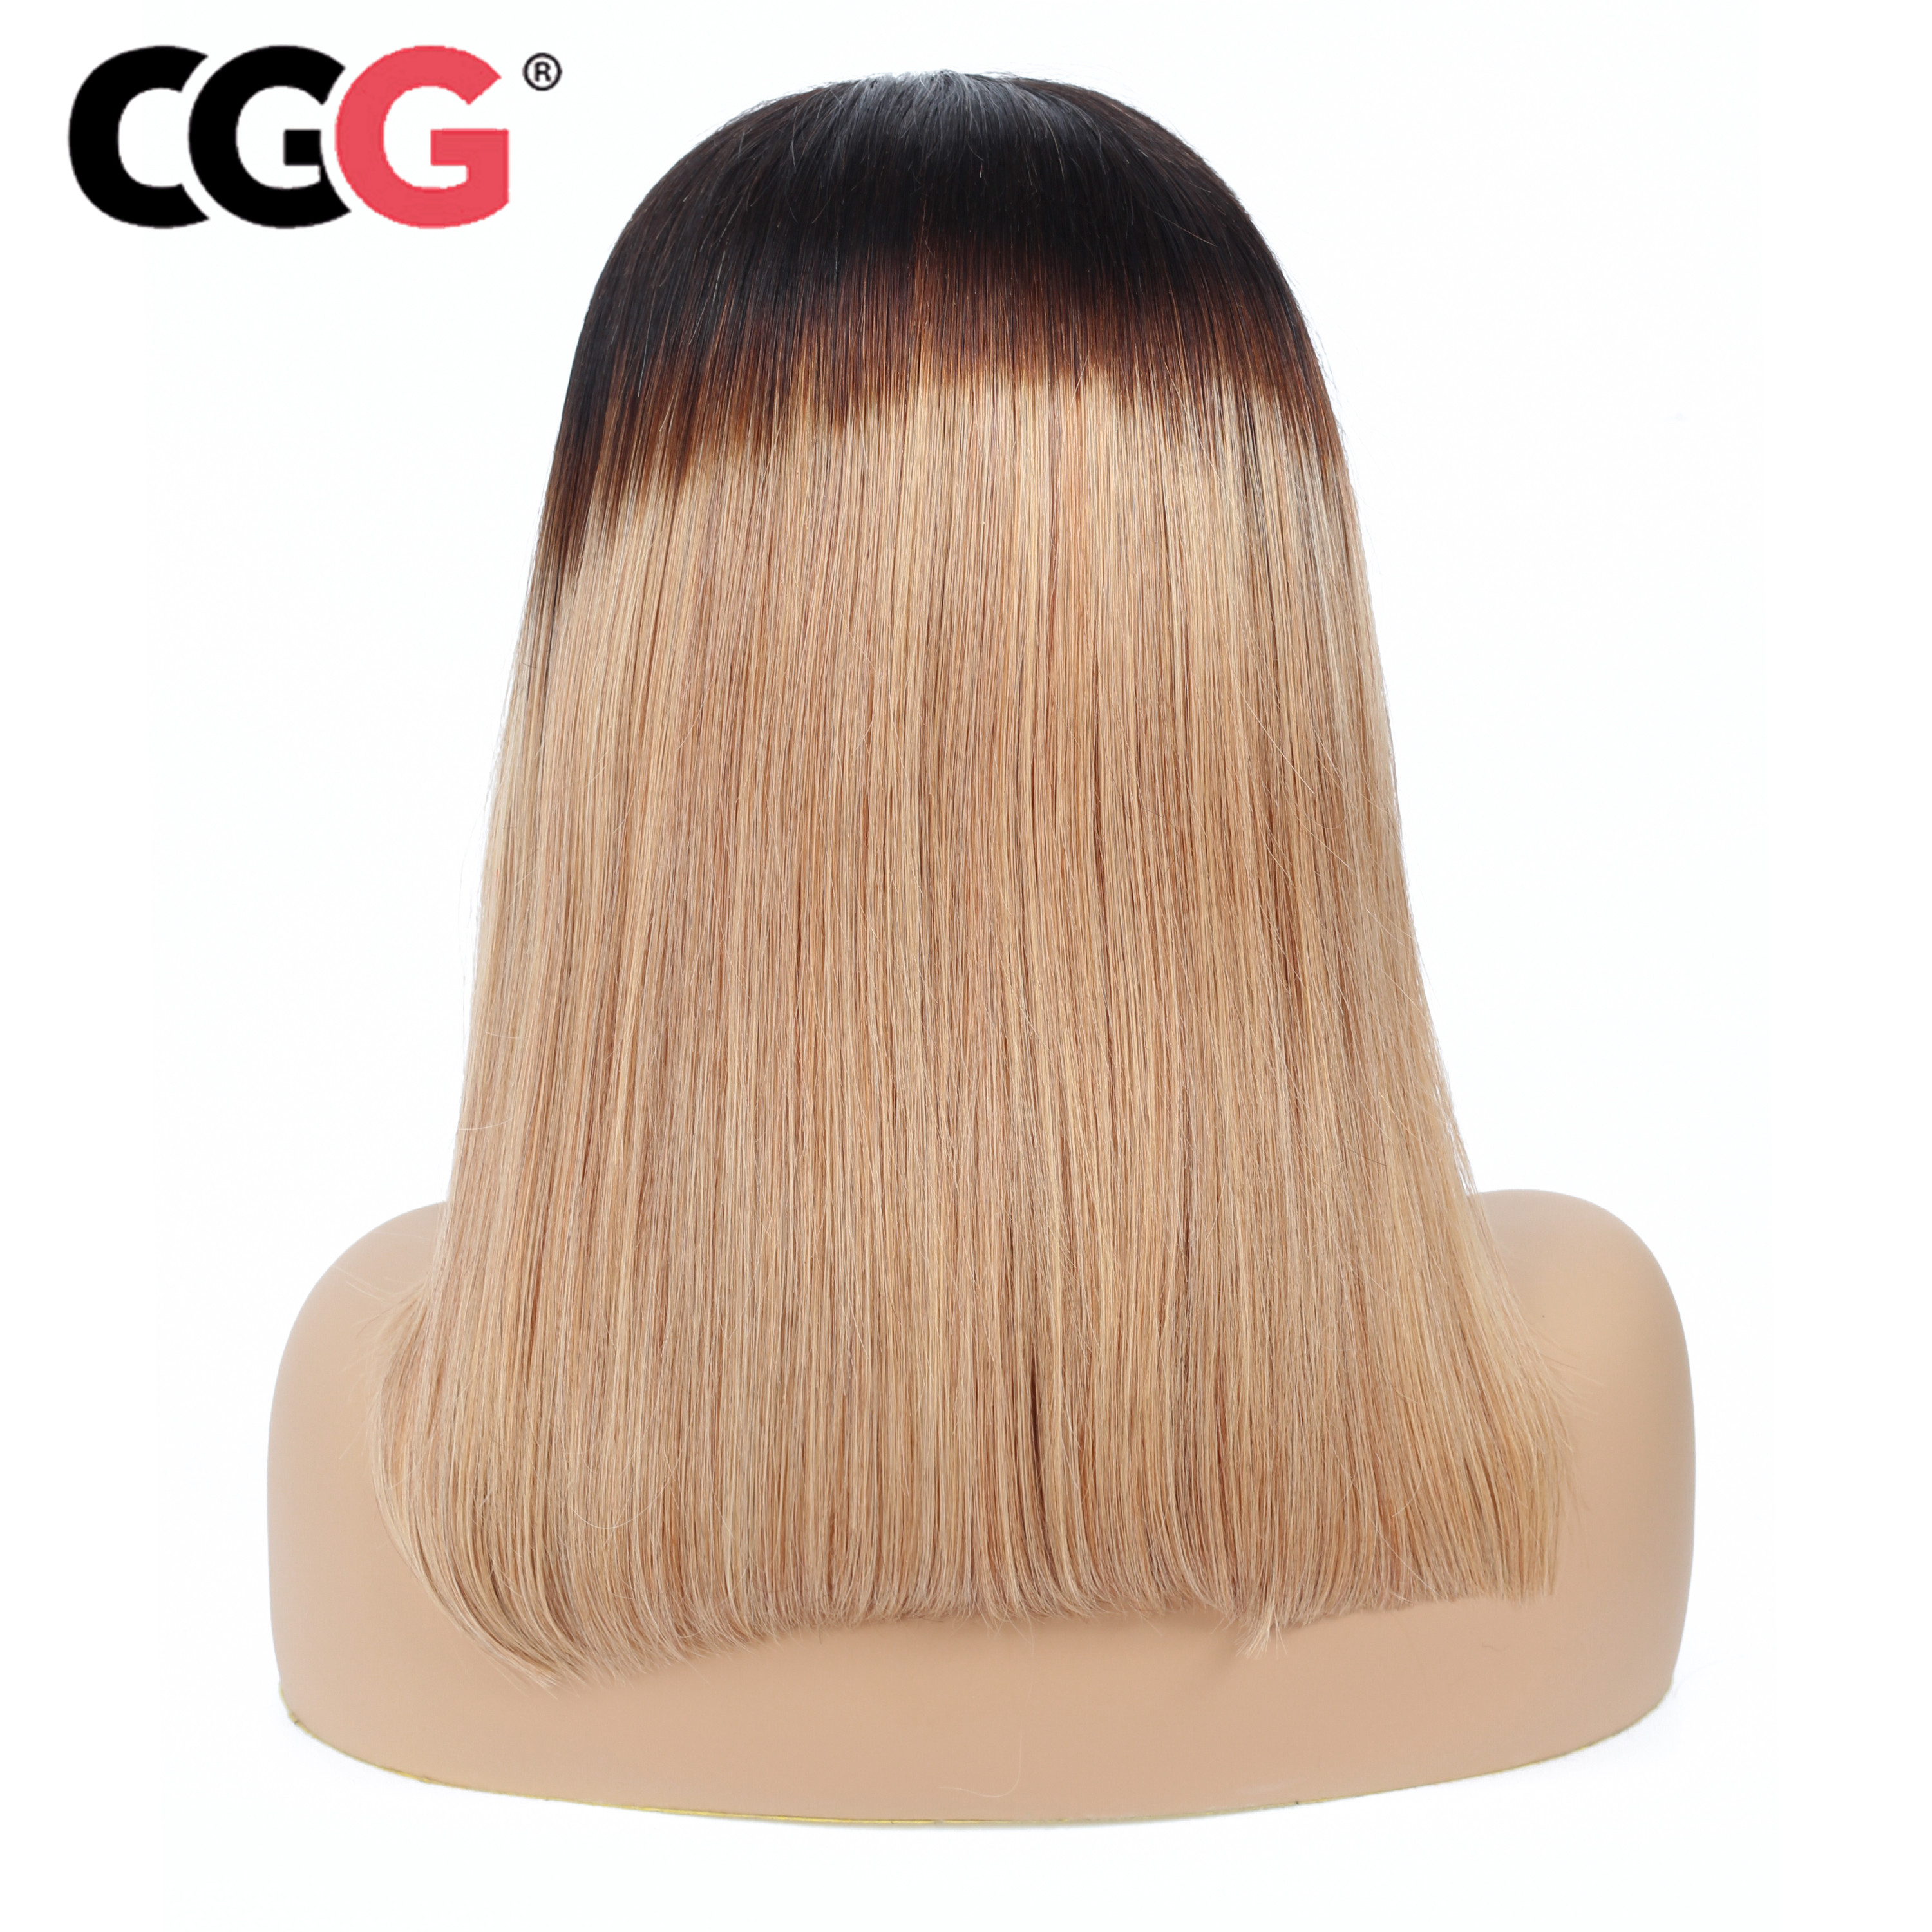 Lace Front Wigs Cgg 1b /27 Ombre 13*4 Lace Front Wig Pre Plucked Malaysian Straight Lace Frontal Human Hair Short Bob Wig Remy Hair Consumers First Hair Extensions & Wigs